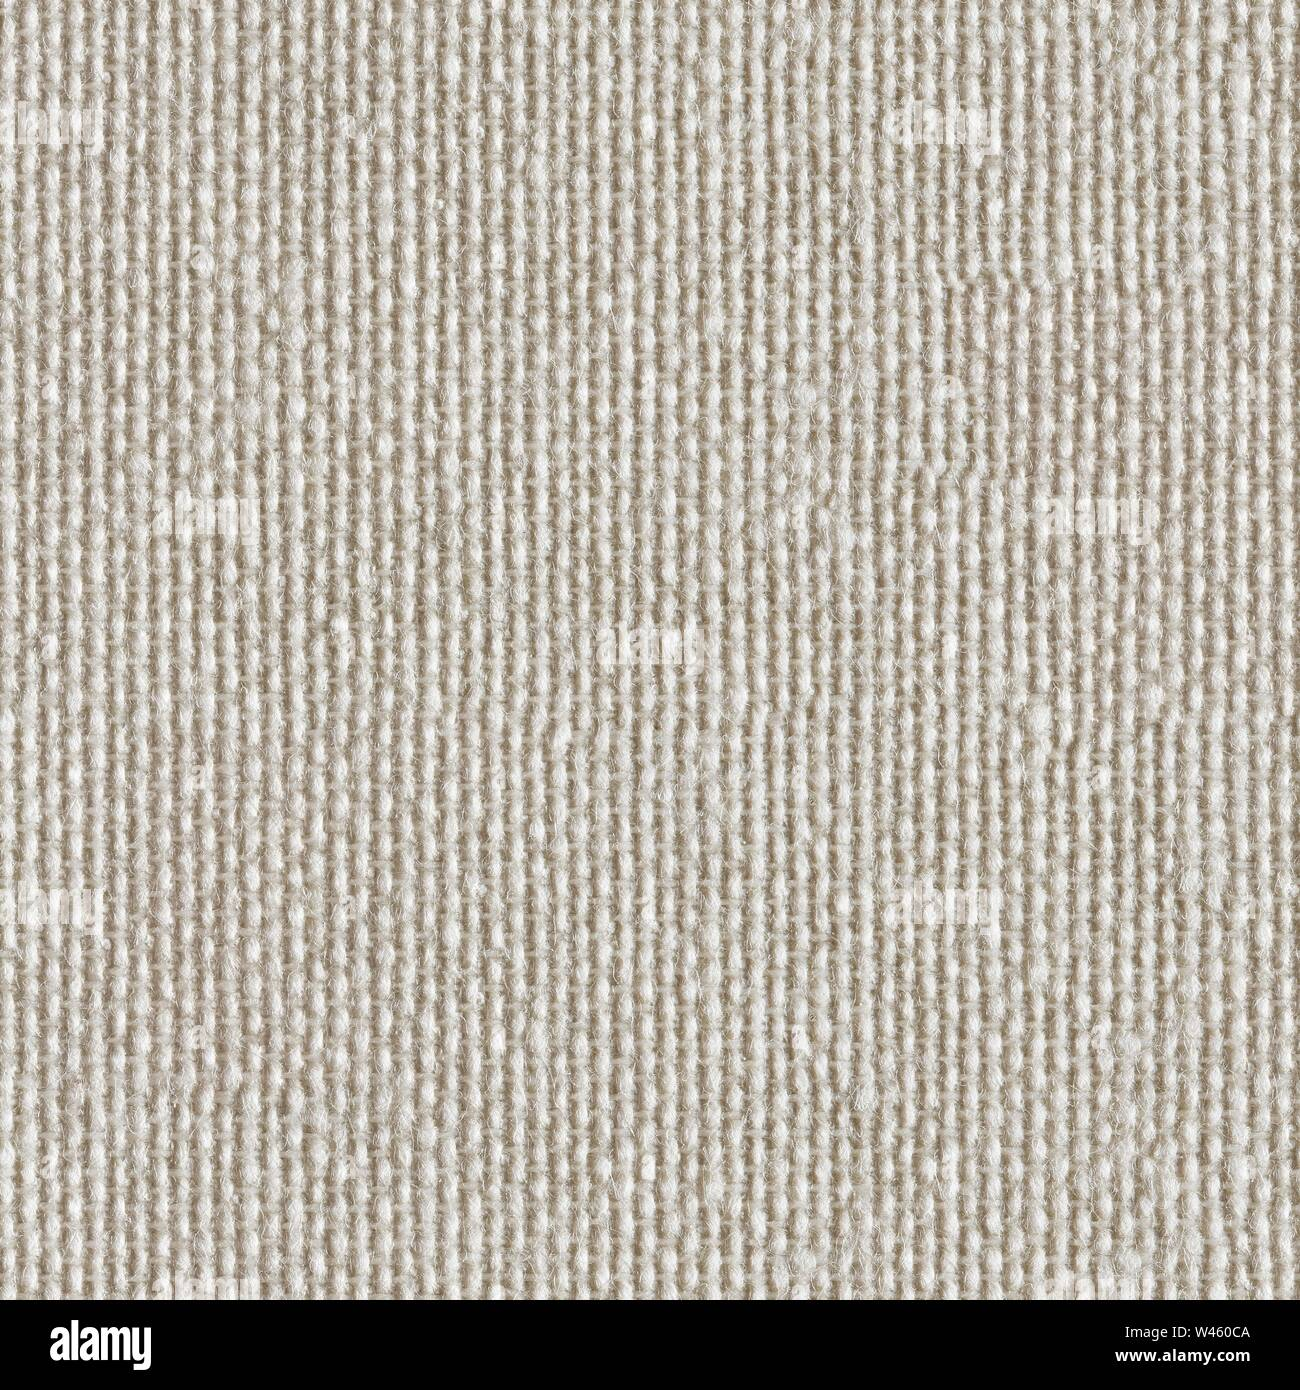 Linen Texture Seamless High Resolution Stock Photography and Images - Alamy